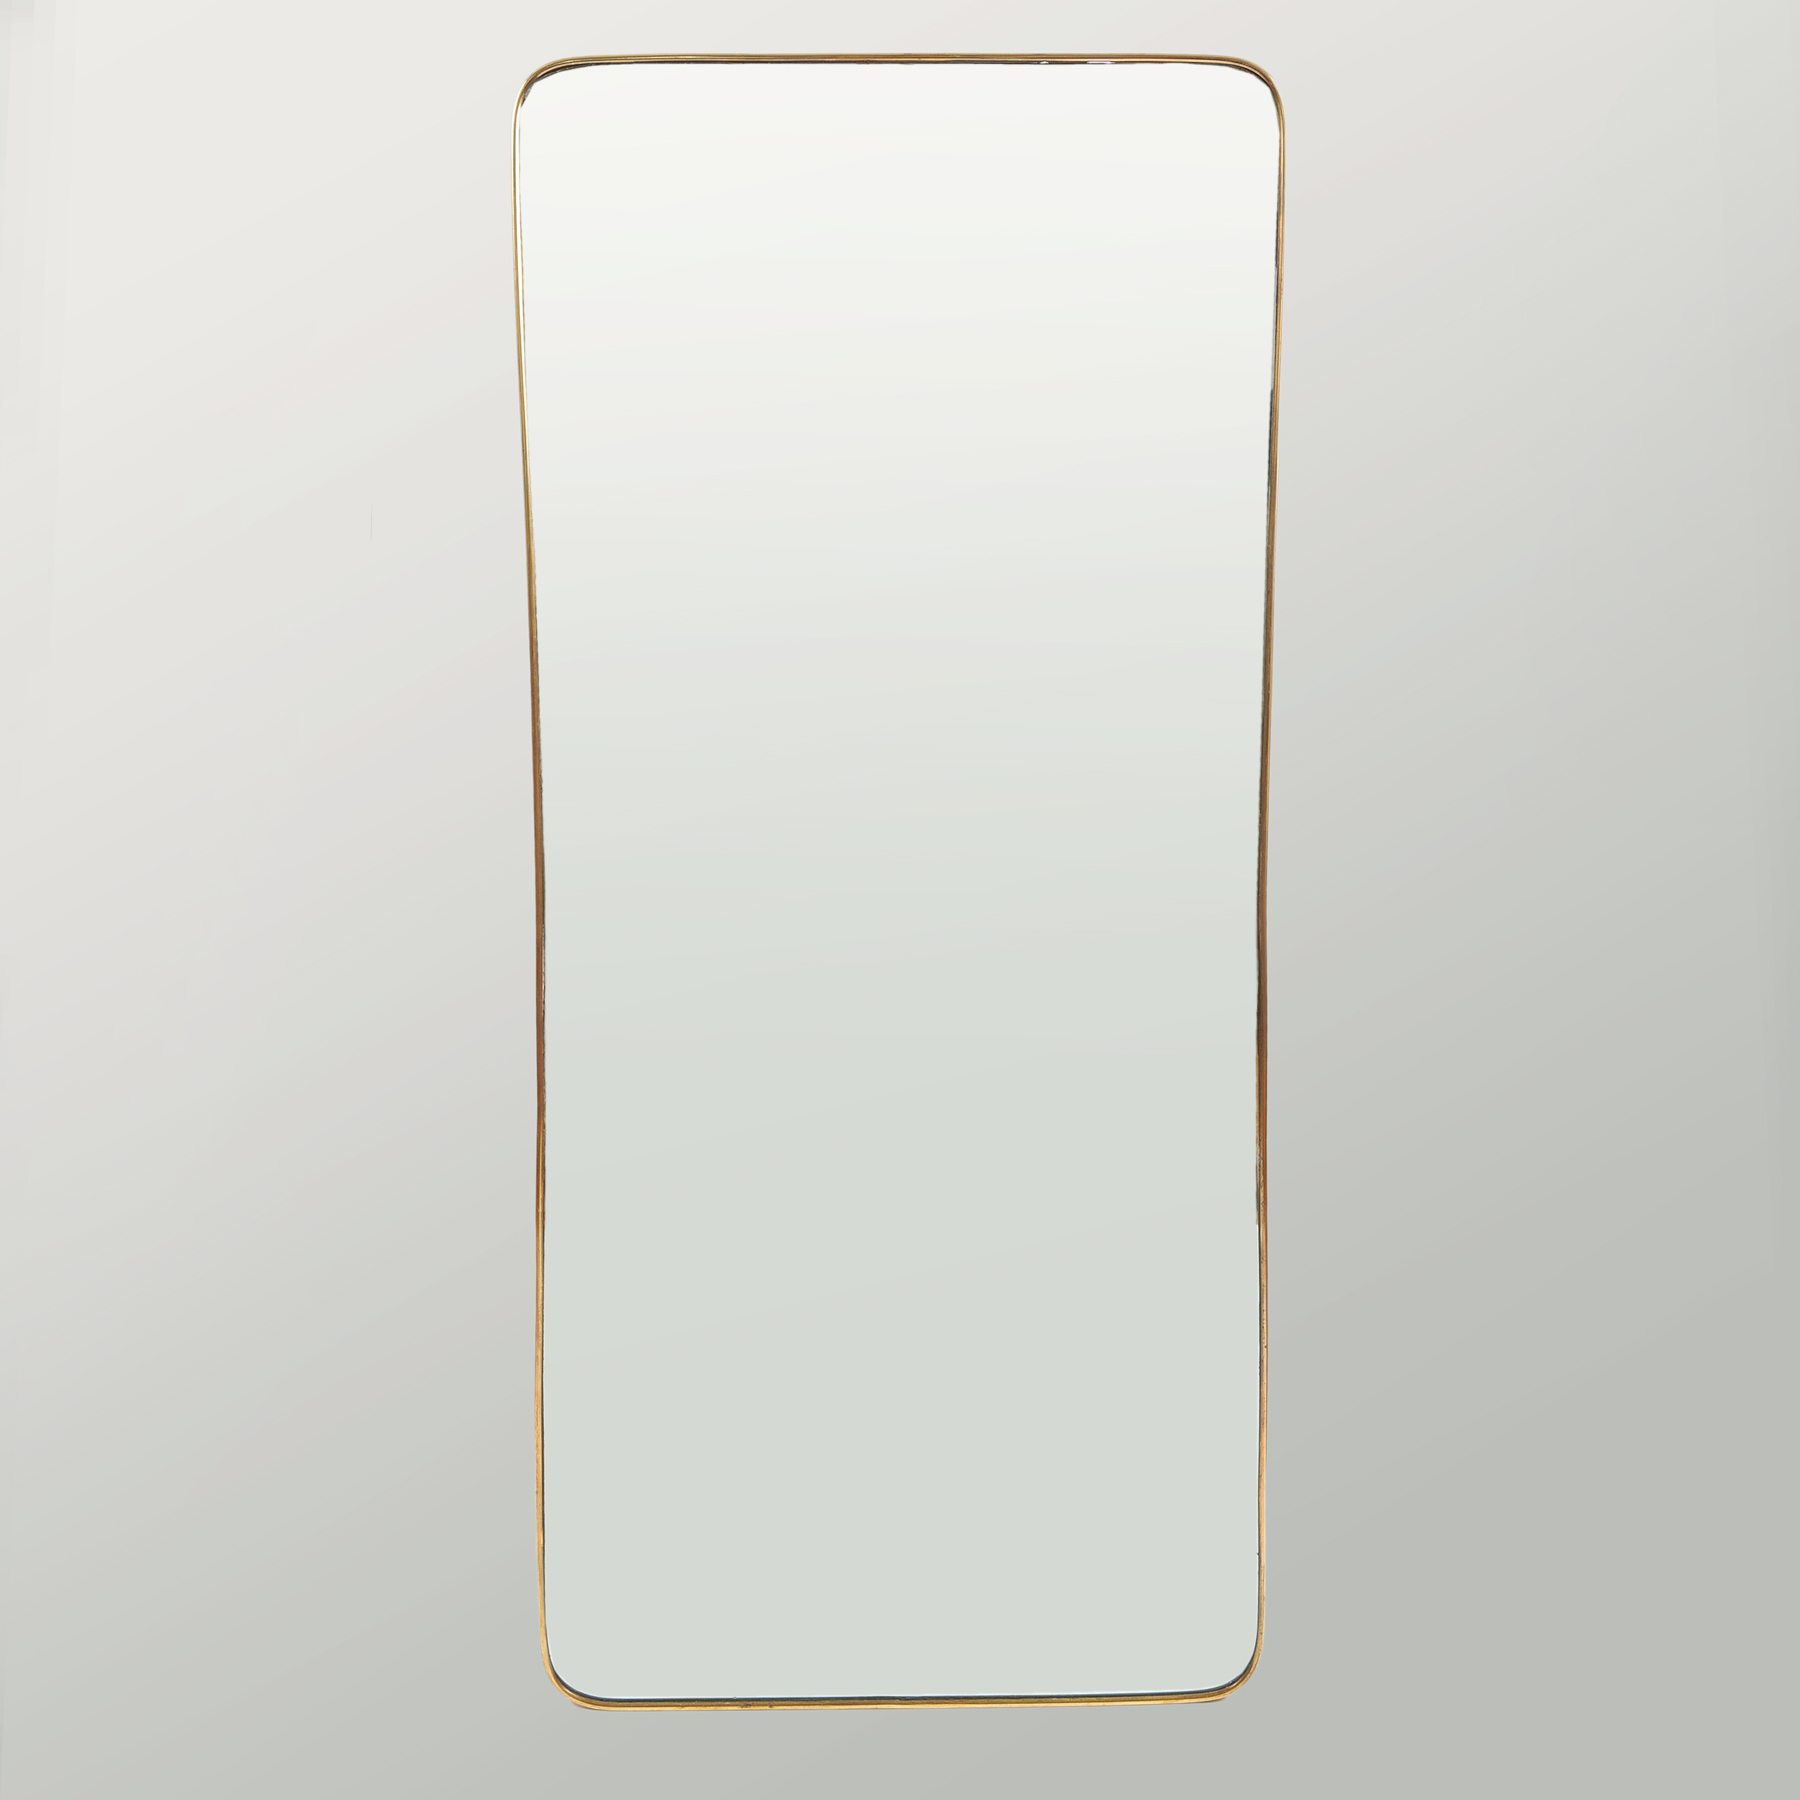 1950 Shaped Brass Mirror 01